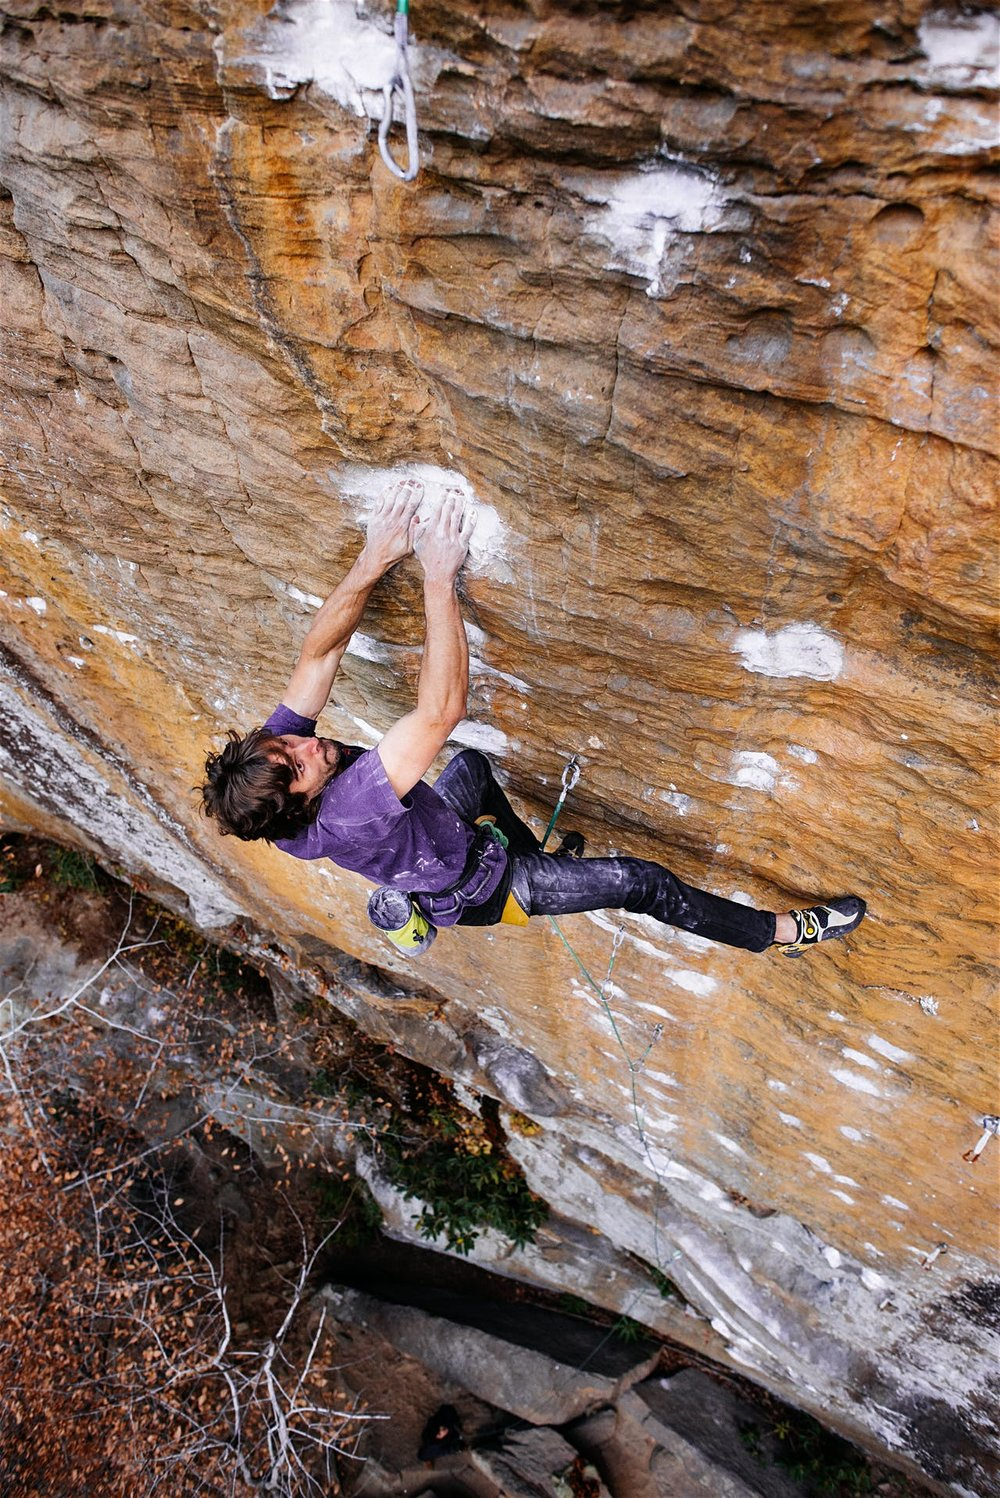 Golden Boy 8a, RRG. Photo: Andy Wickstrom